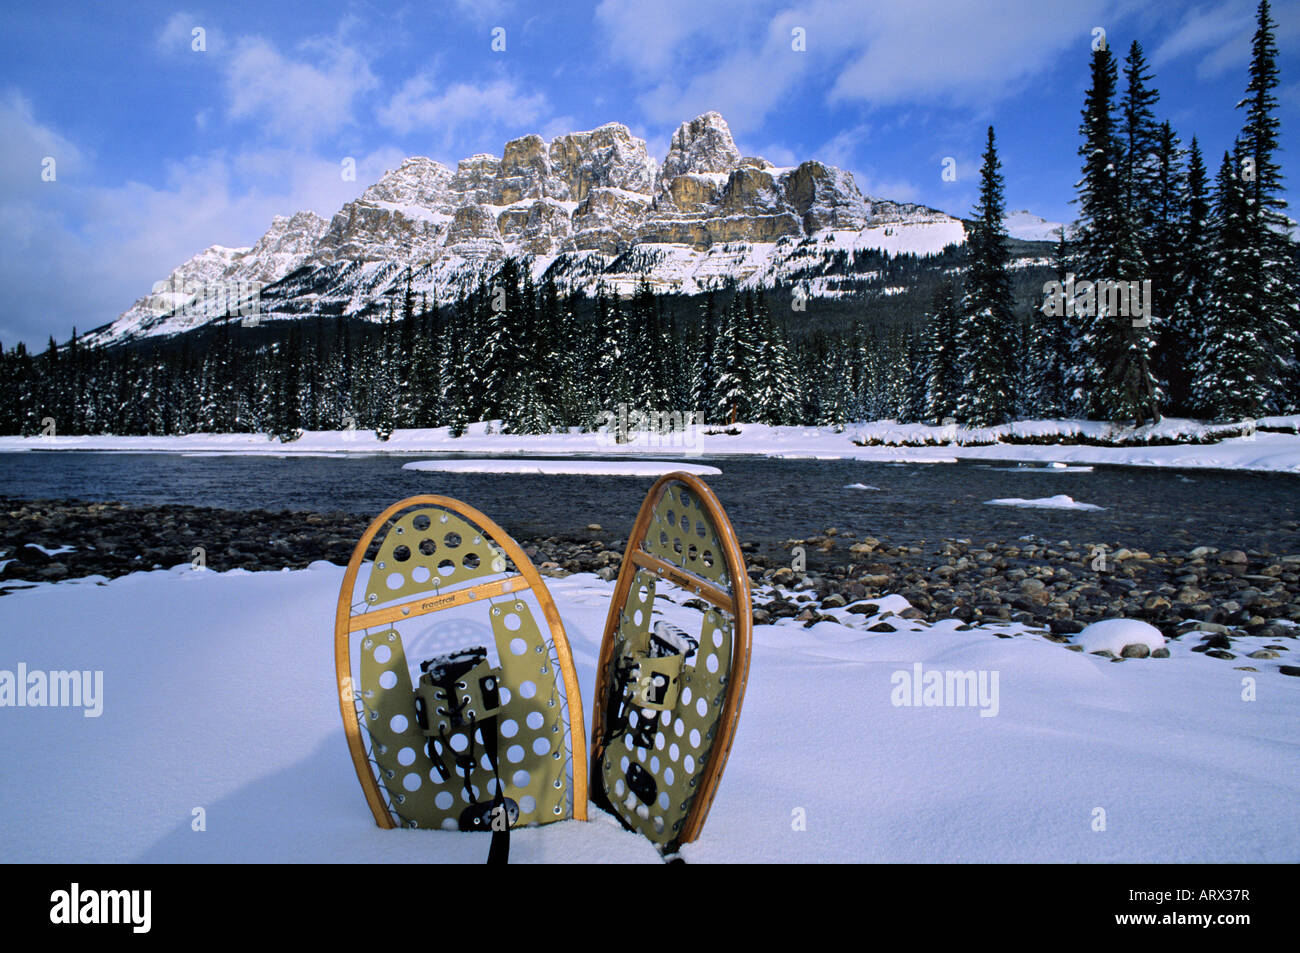 Snowshoes Bow River Castle Mountain Banff National Park Alberta Canada - Stock Image